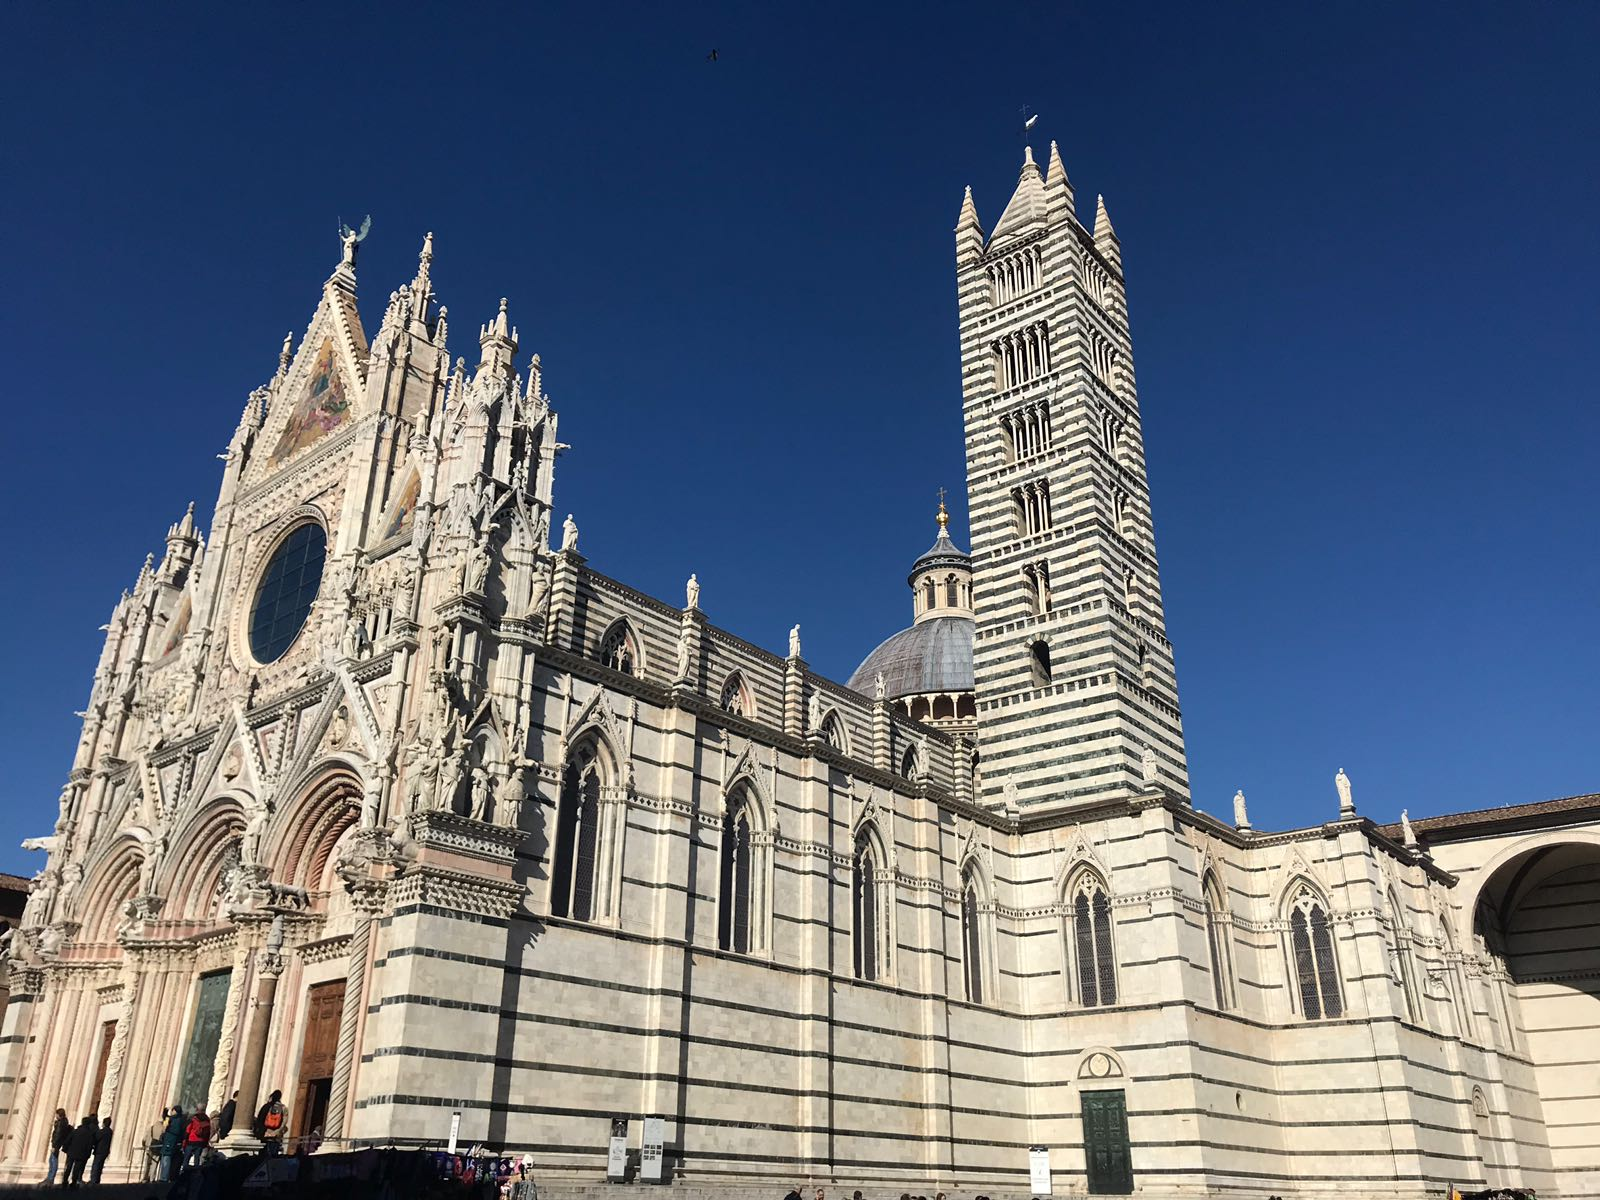 Siena Cathedral against a clear blue sky with facade and tower both visible